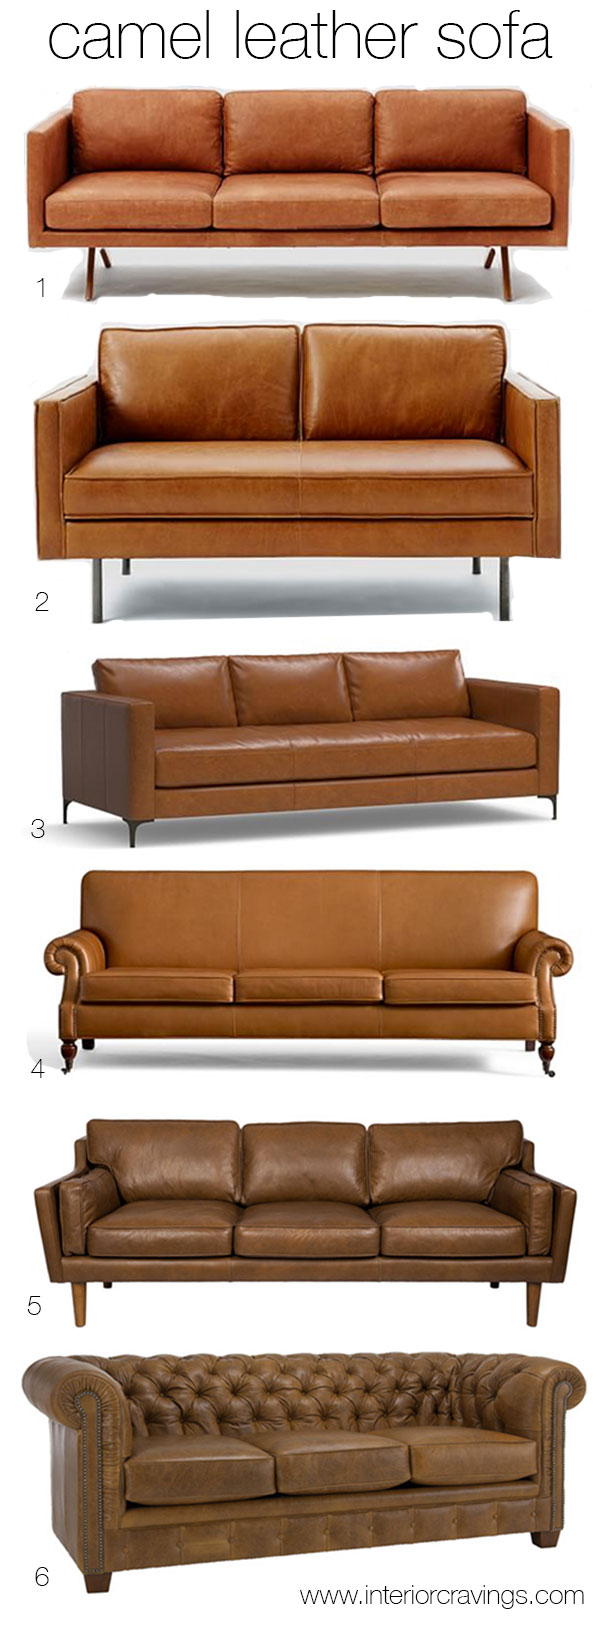 Camel Leather Sofas Options And Resources